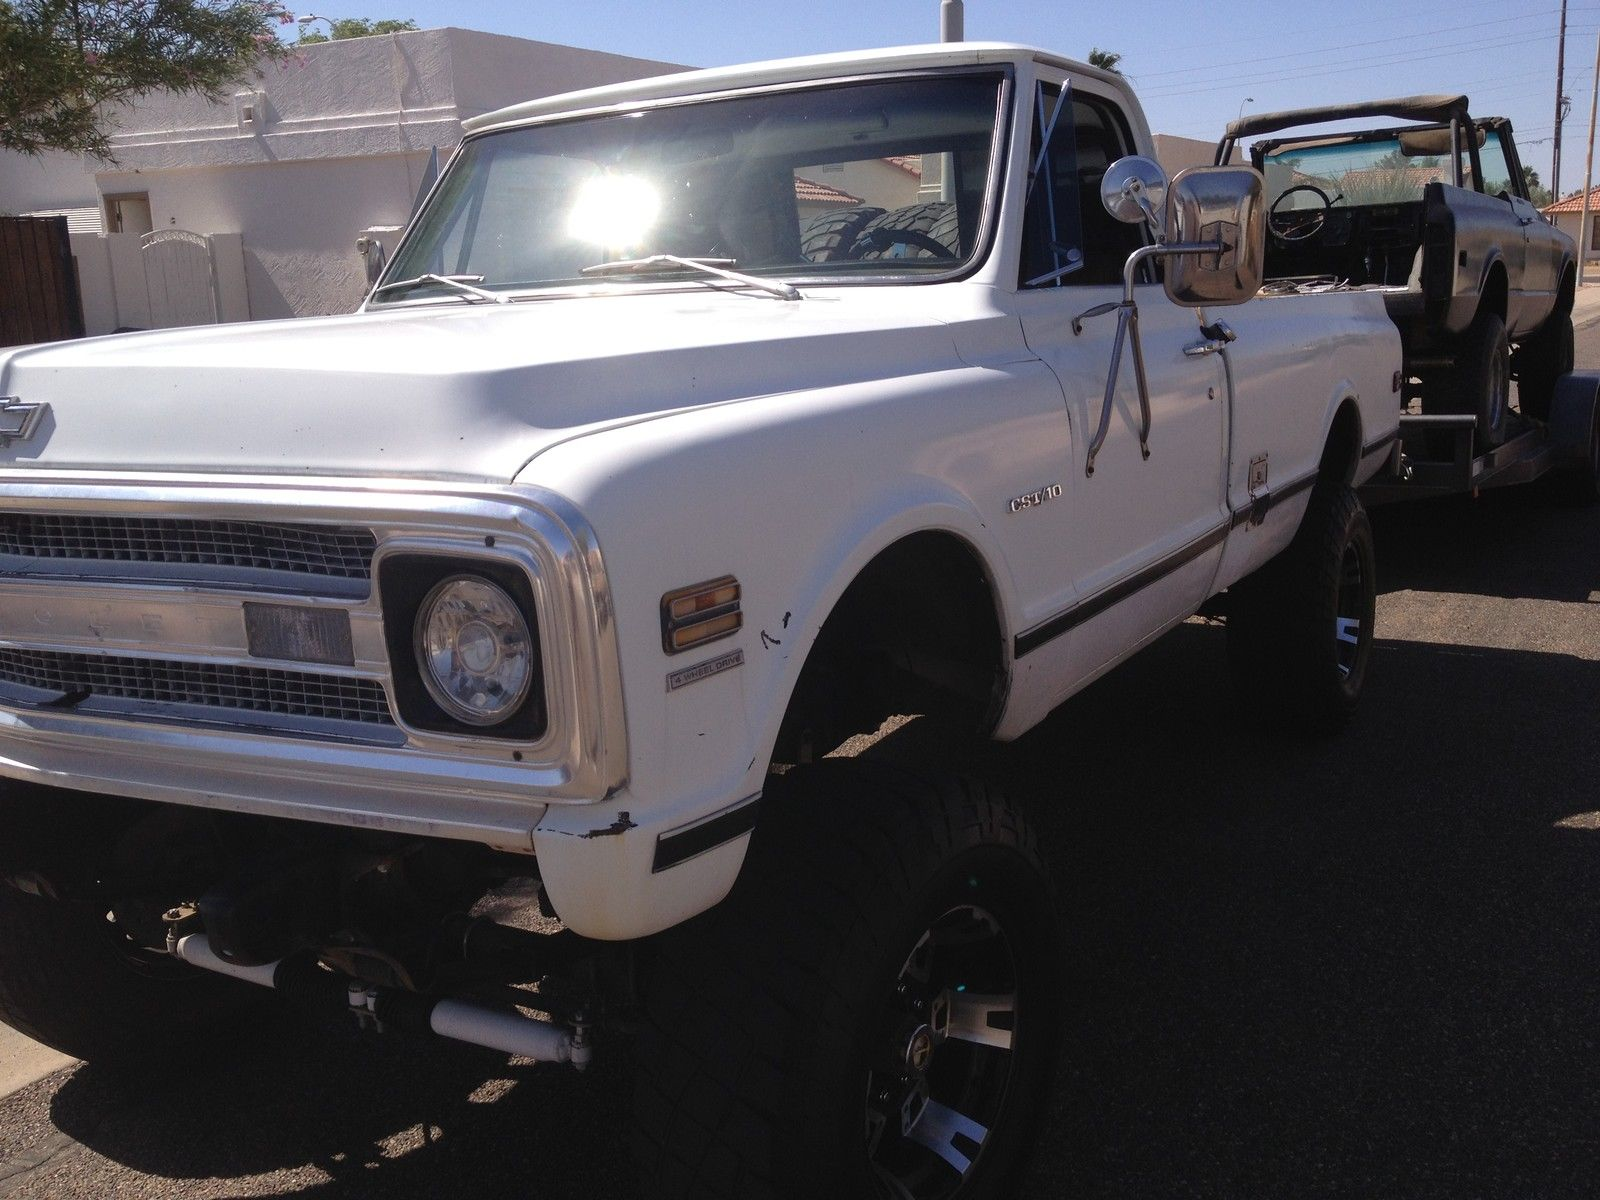 1970 Chevy Cst K10 4x4 With 3 4 Ton Axels Rust Free Truck 69 70 71 1968 C10 Lifted Chevrolet C 10